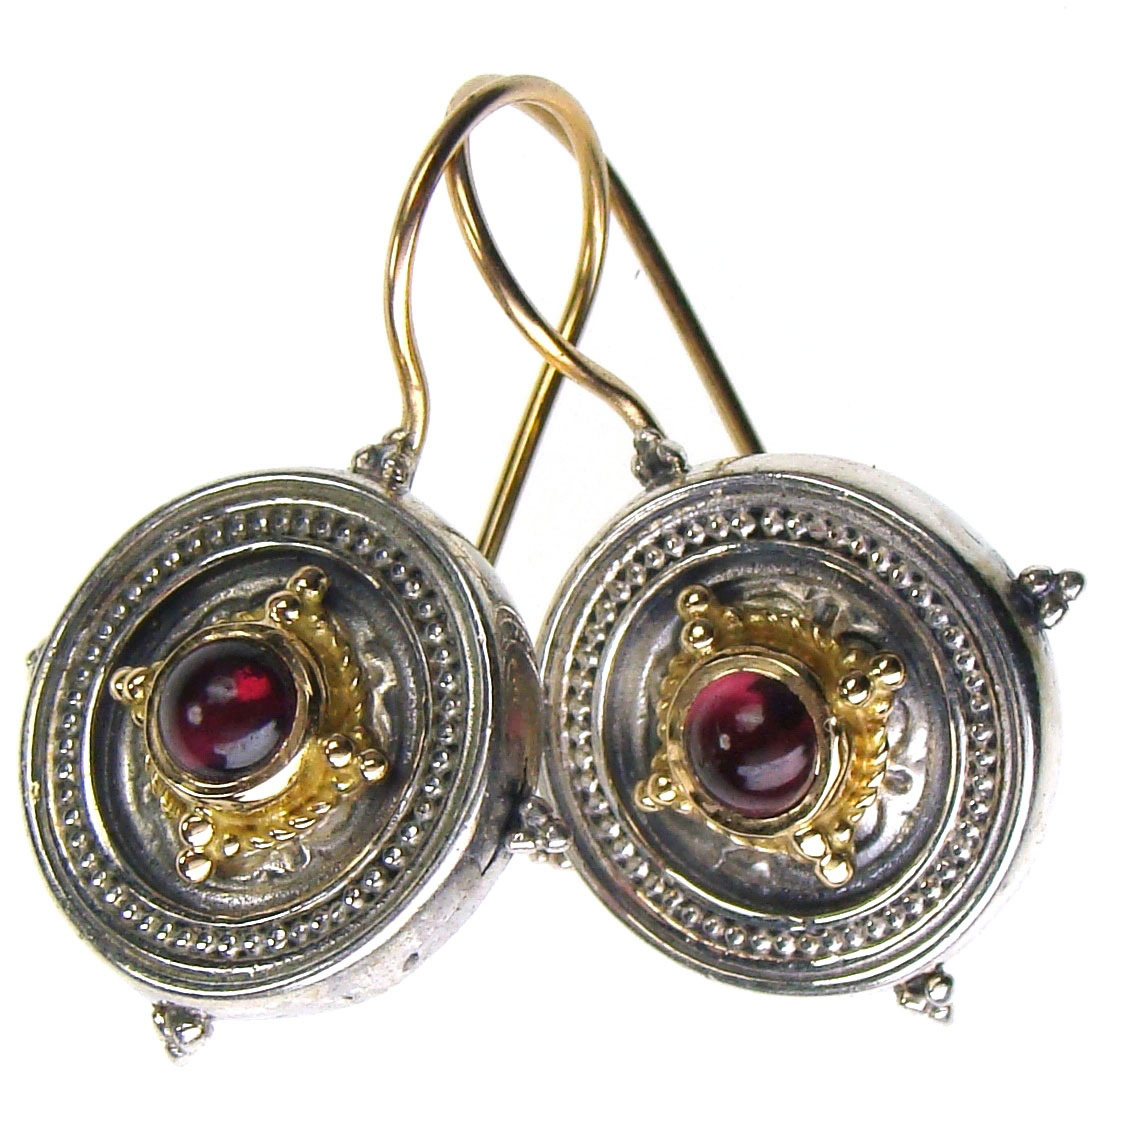 Gerochristo 1026 - Solid 18K Gold & Silver Medieval-Byzantine Earrings  image 2